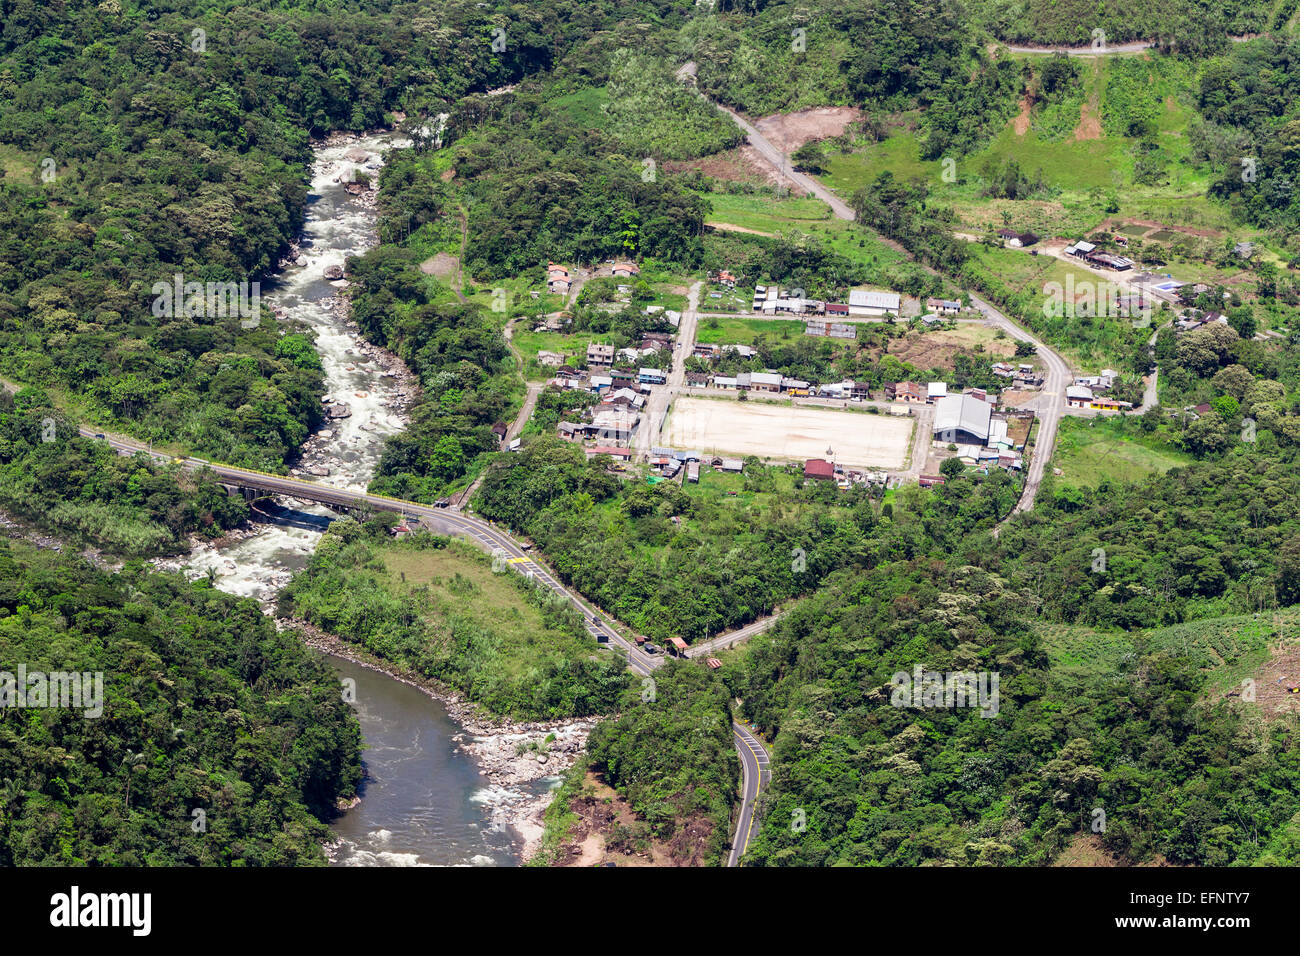 Rio Blanco Village In Ecuadorian Andes Aerial Shot - Stock Image